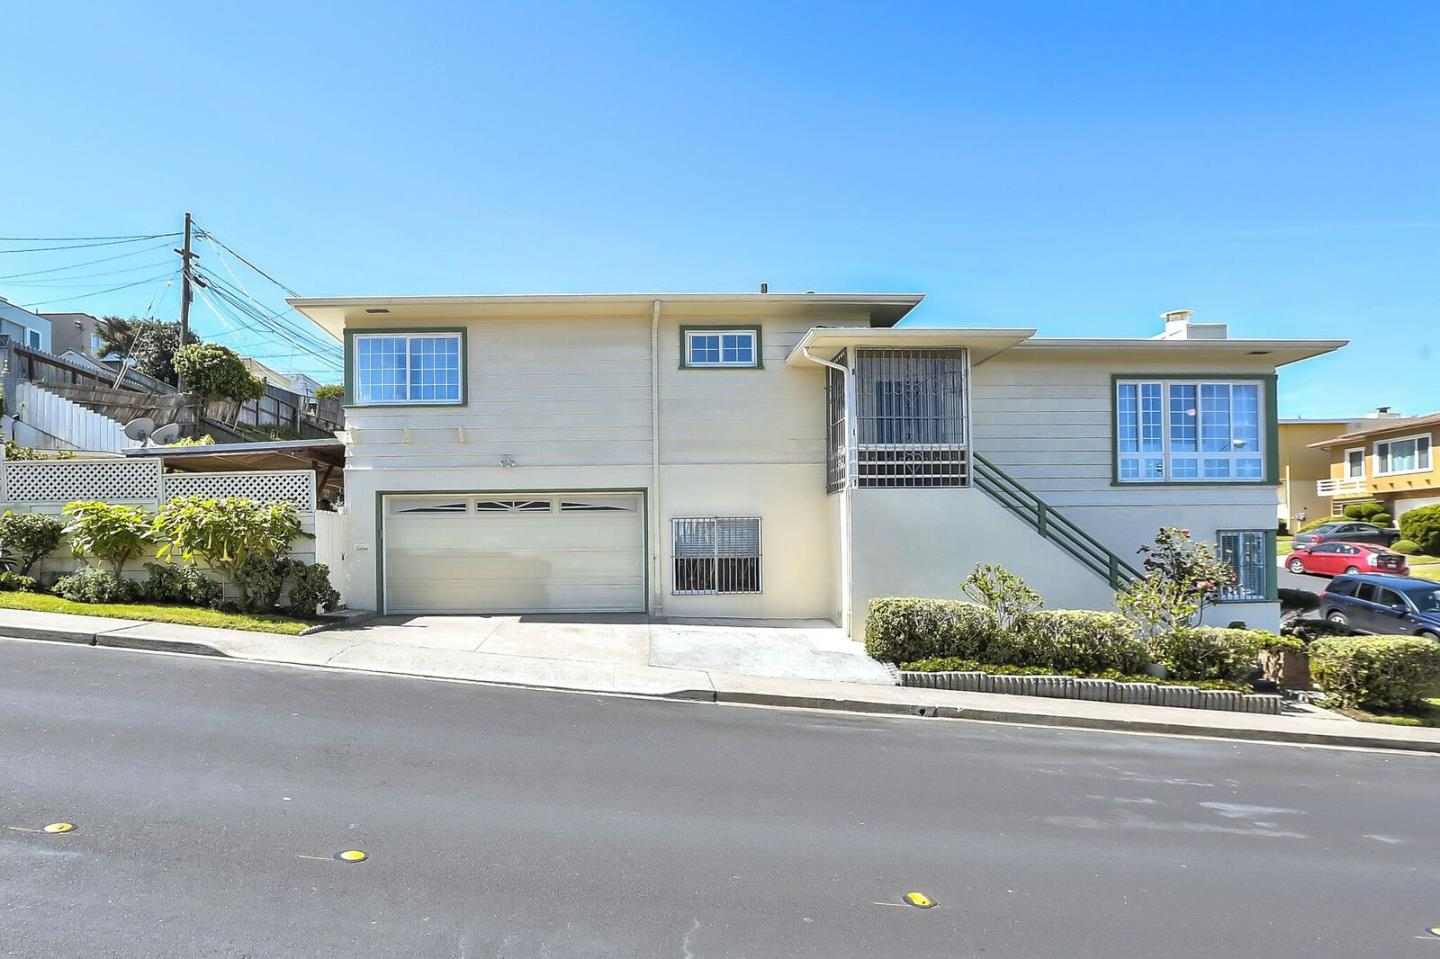 Single Family Home for Sale at 272 Skyline Drive 272 Skyline Drive Daly City, California 94015 United States